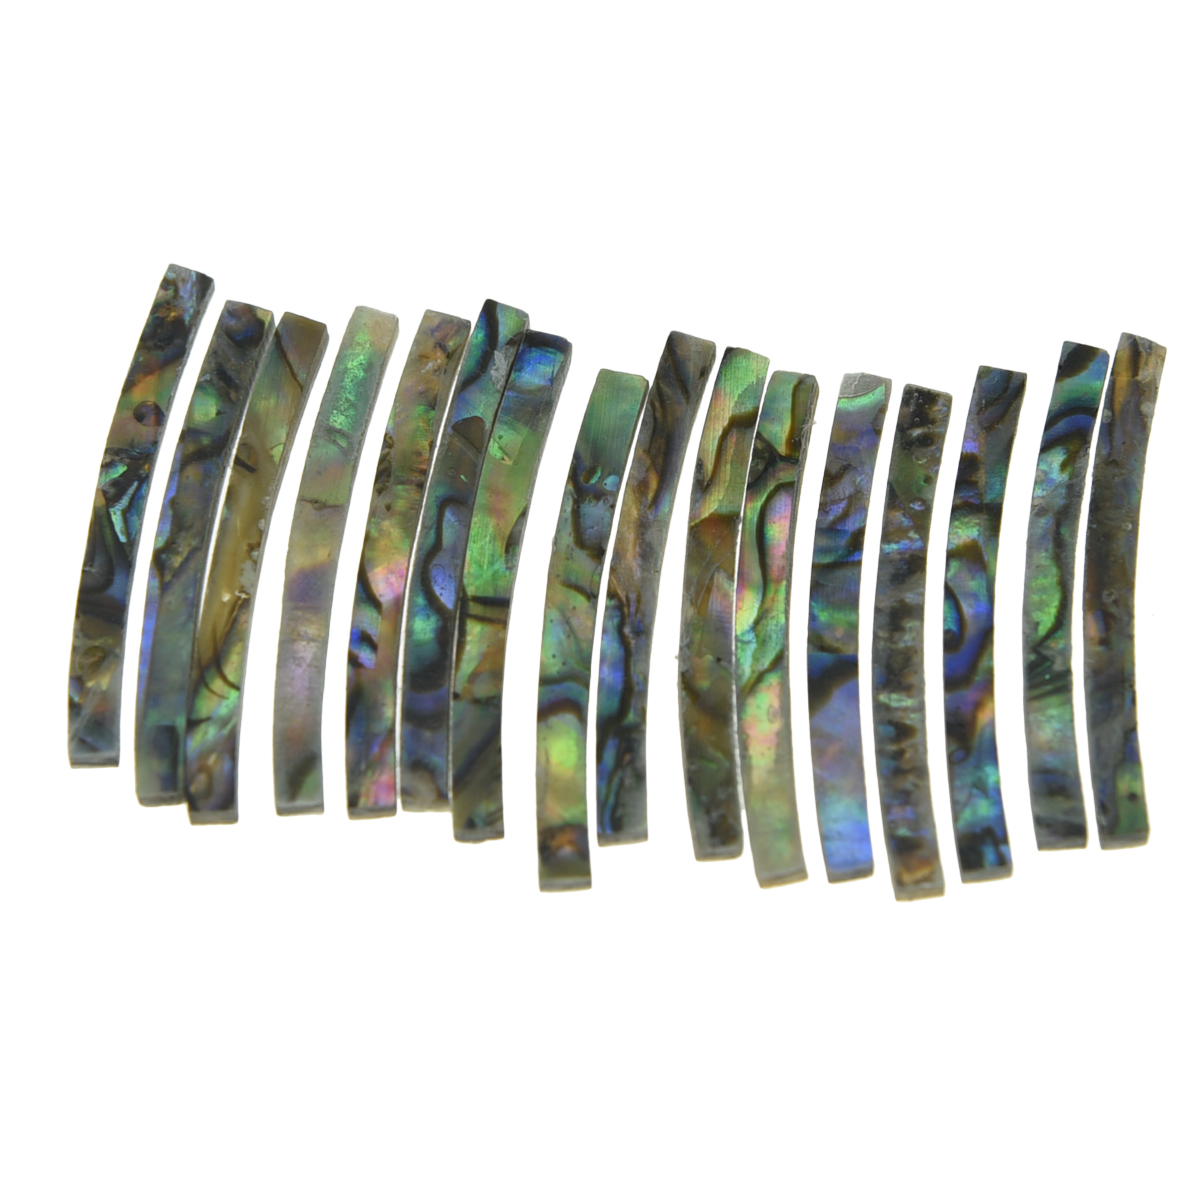 KAISH Guitar Rosette Paua Abalone Shell Curved Strips Guitar Sound Hole Inlay 2mm 3mm 4mm width